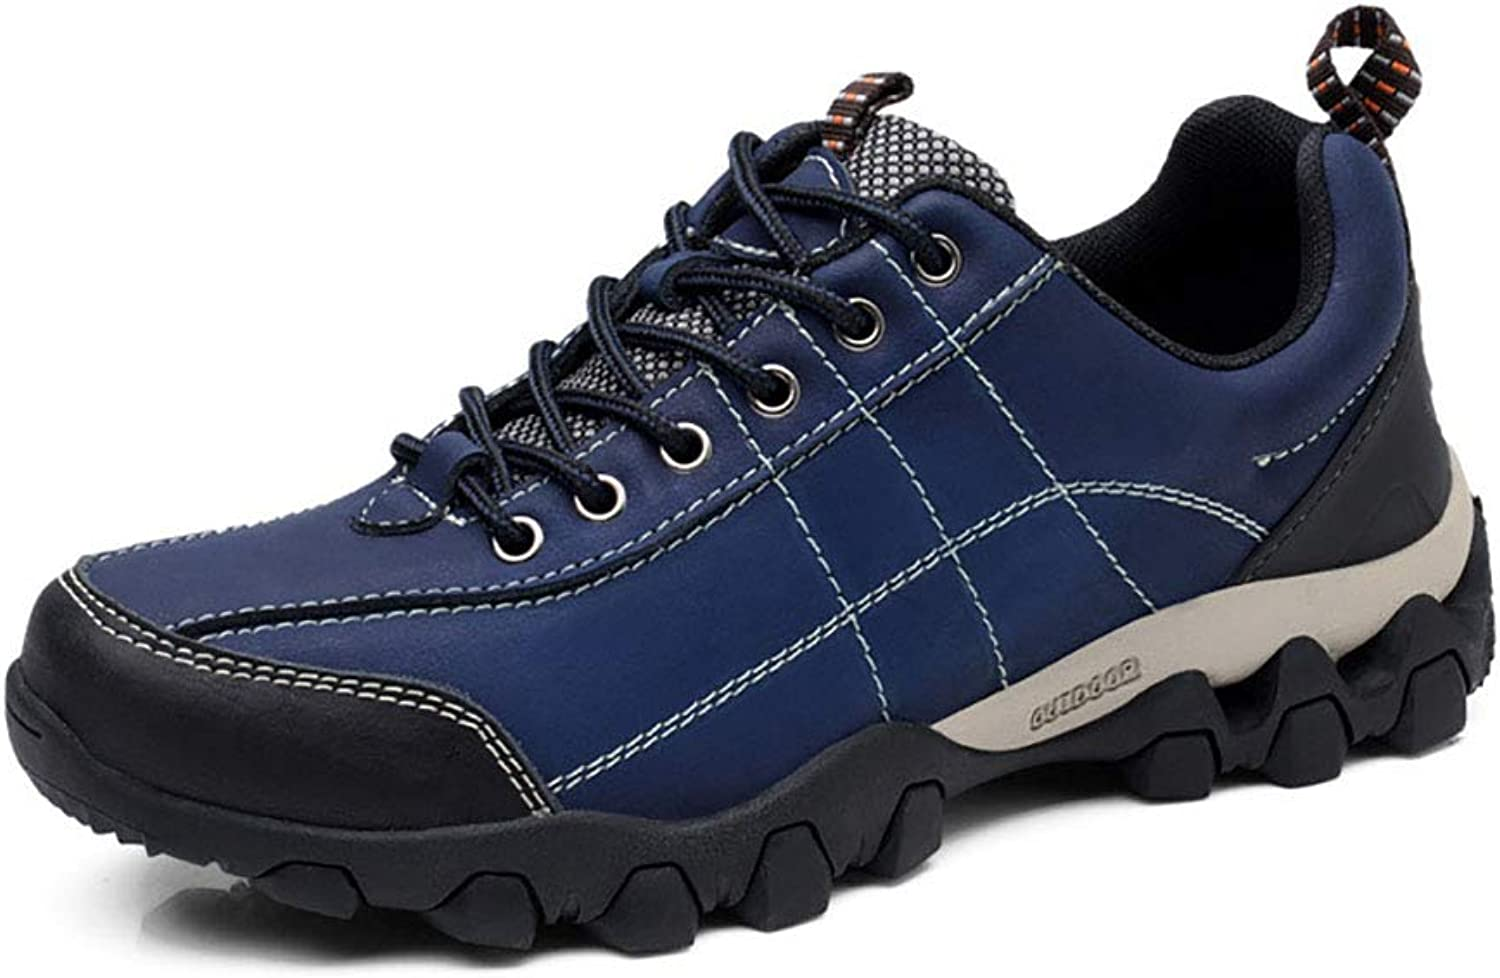 66426f4613b3d Men's shoes, Spring Fall Matte Sneakers, Outdoor Exercise Sneakers ...